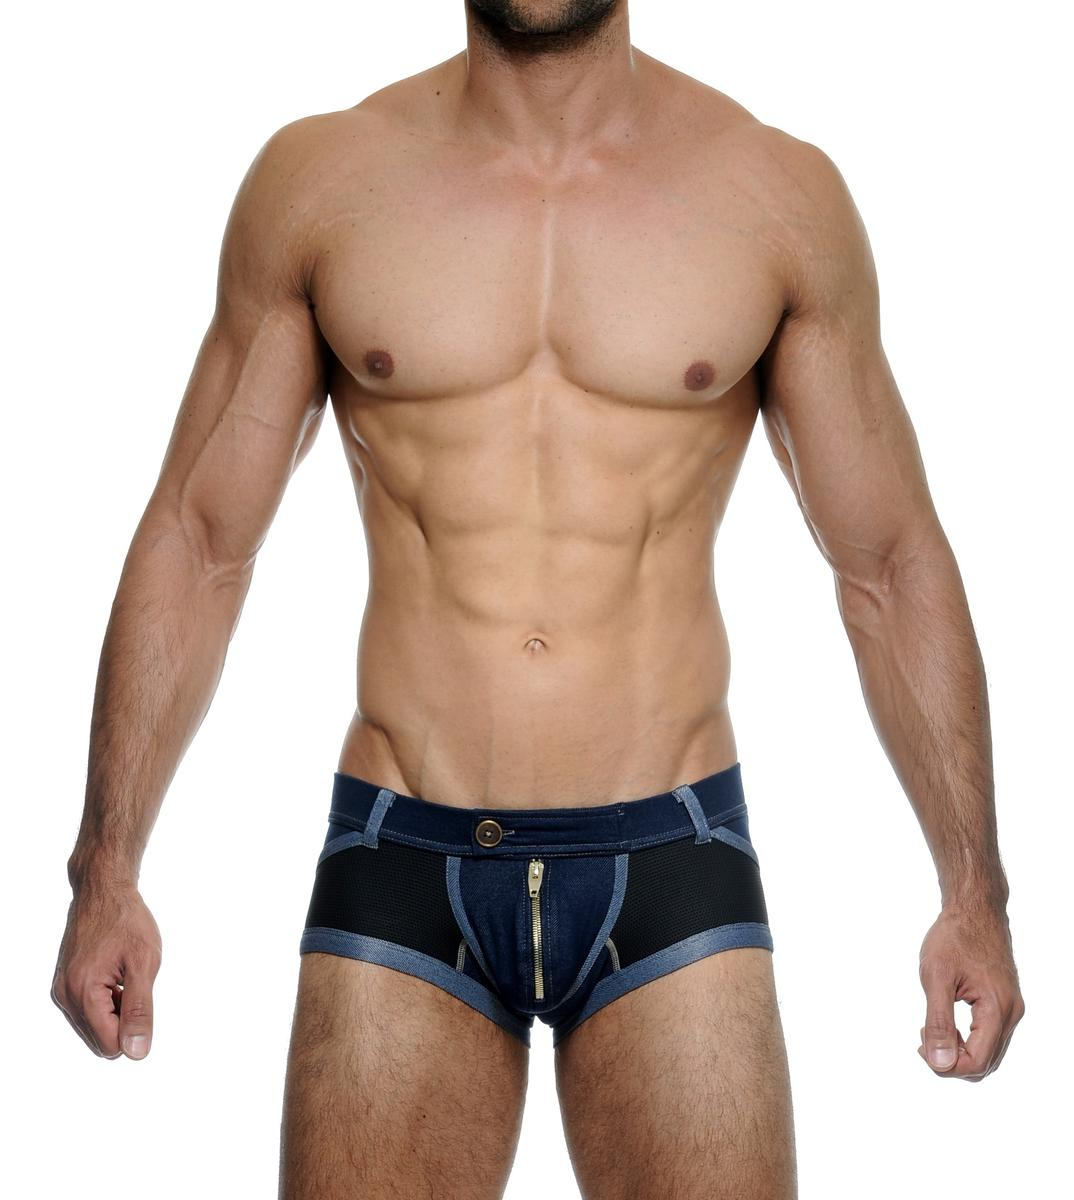 STUD Underwear Codec Trunk - Denim